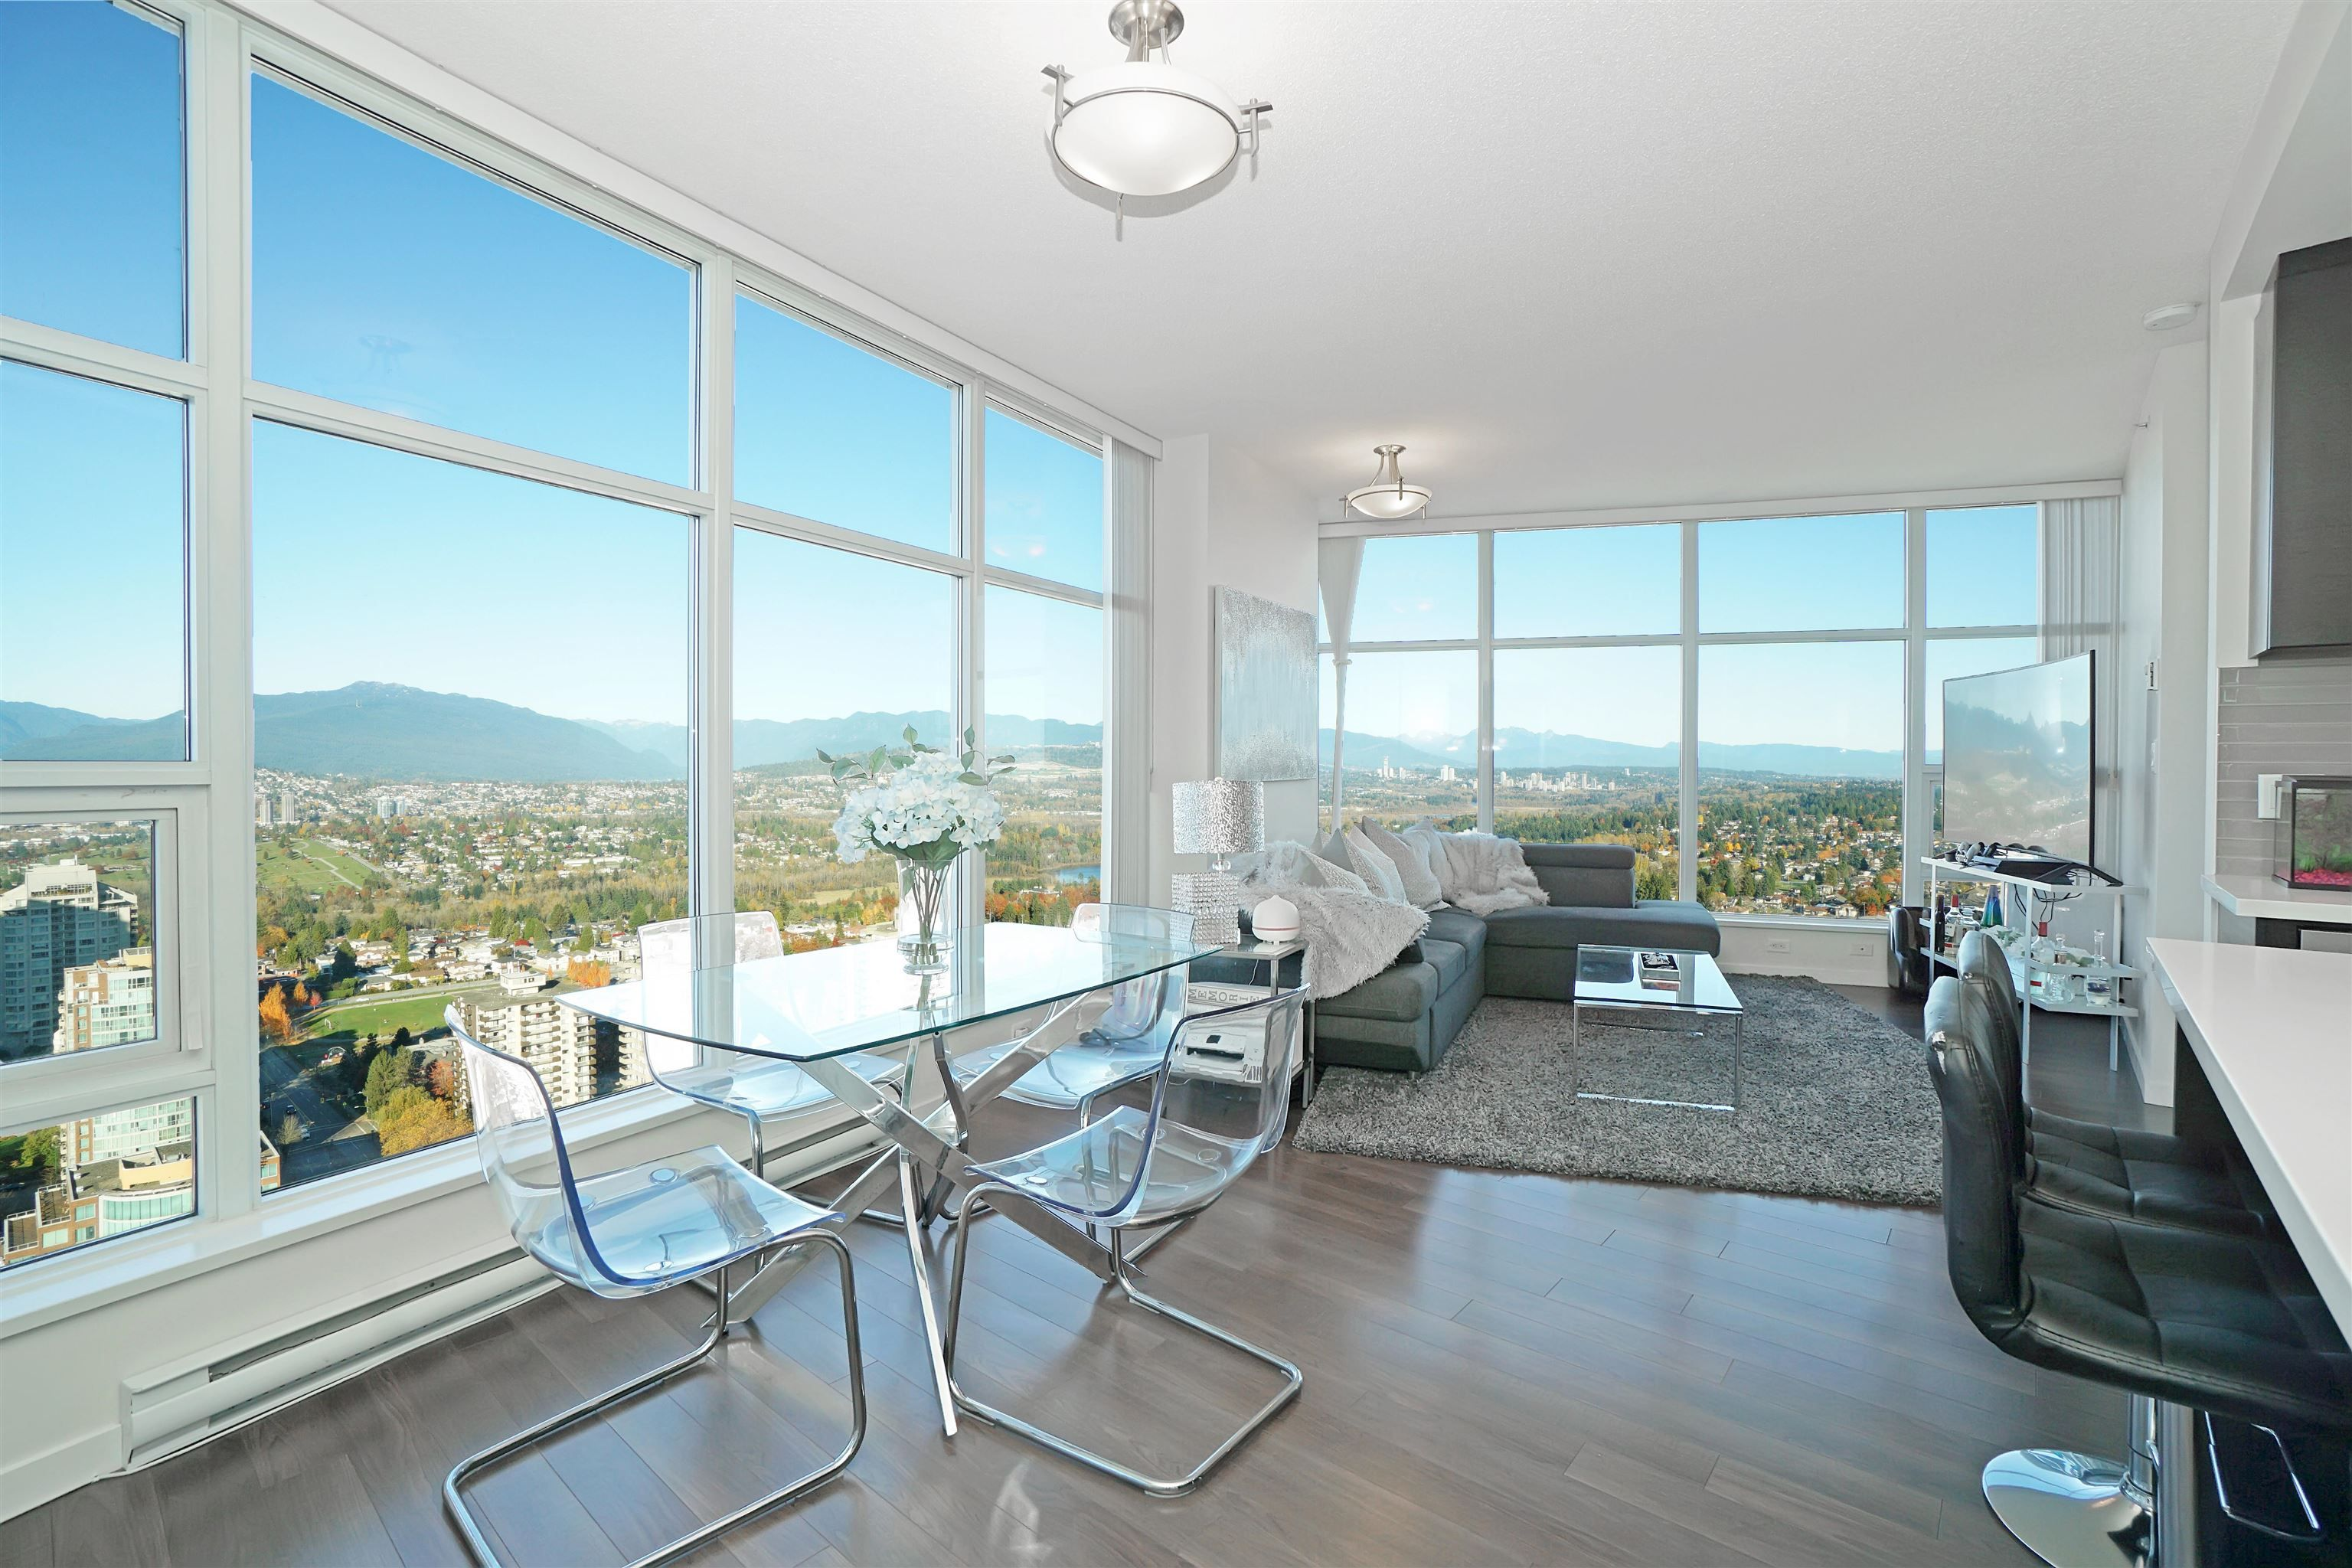 Main Photo: 3702 4880 BENNETT STREET in Burnaby: Metrotown Condo for sale (Burnaby South)  : MLS®# R2612075